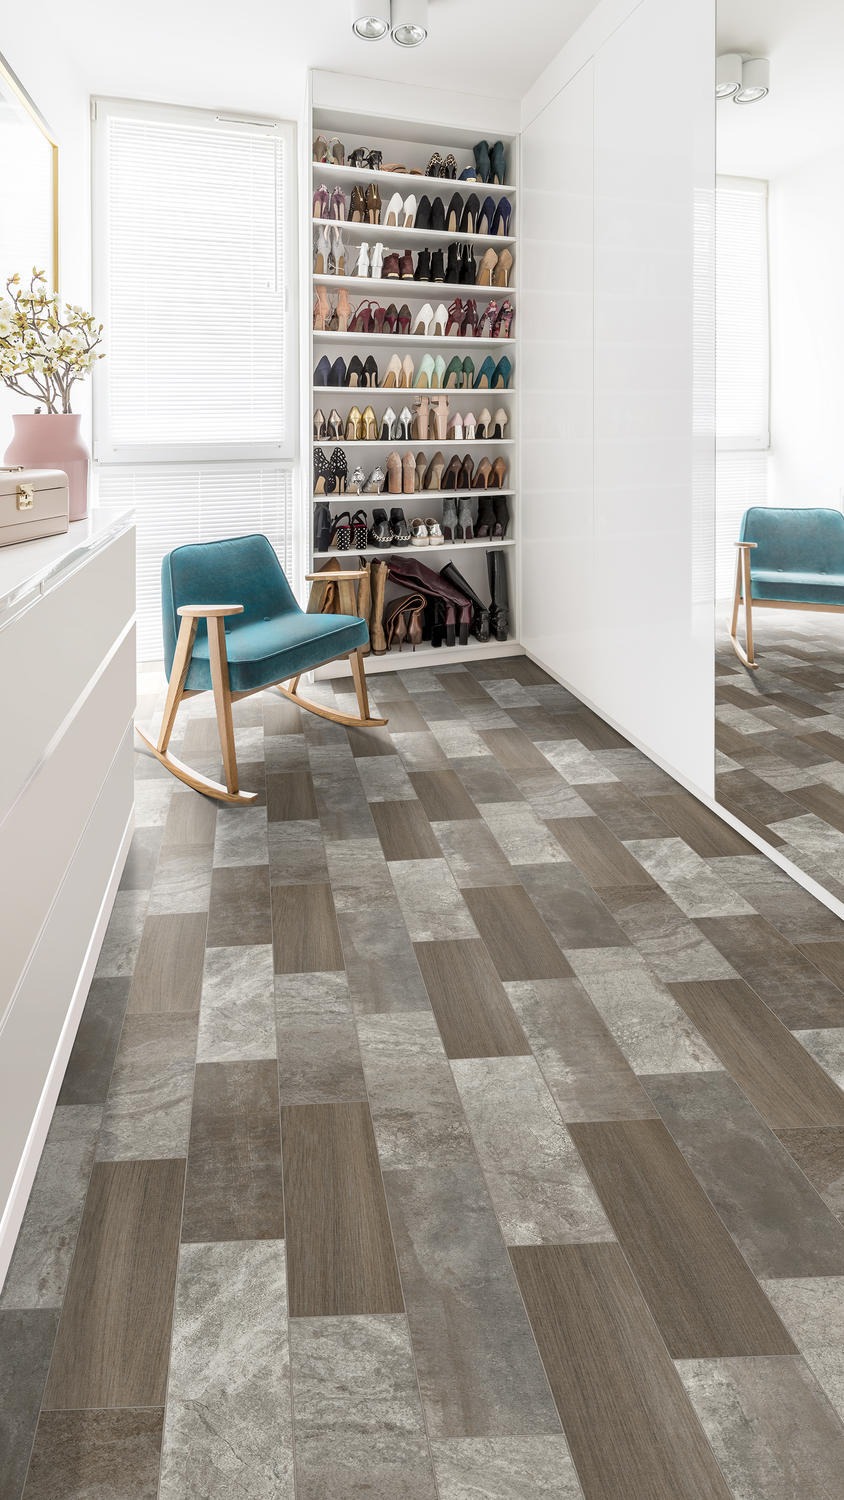 Staggs Floor Covering image 1